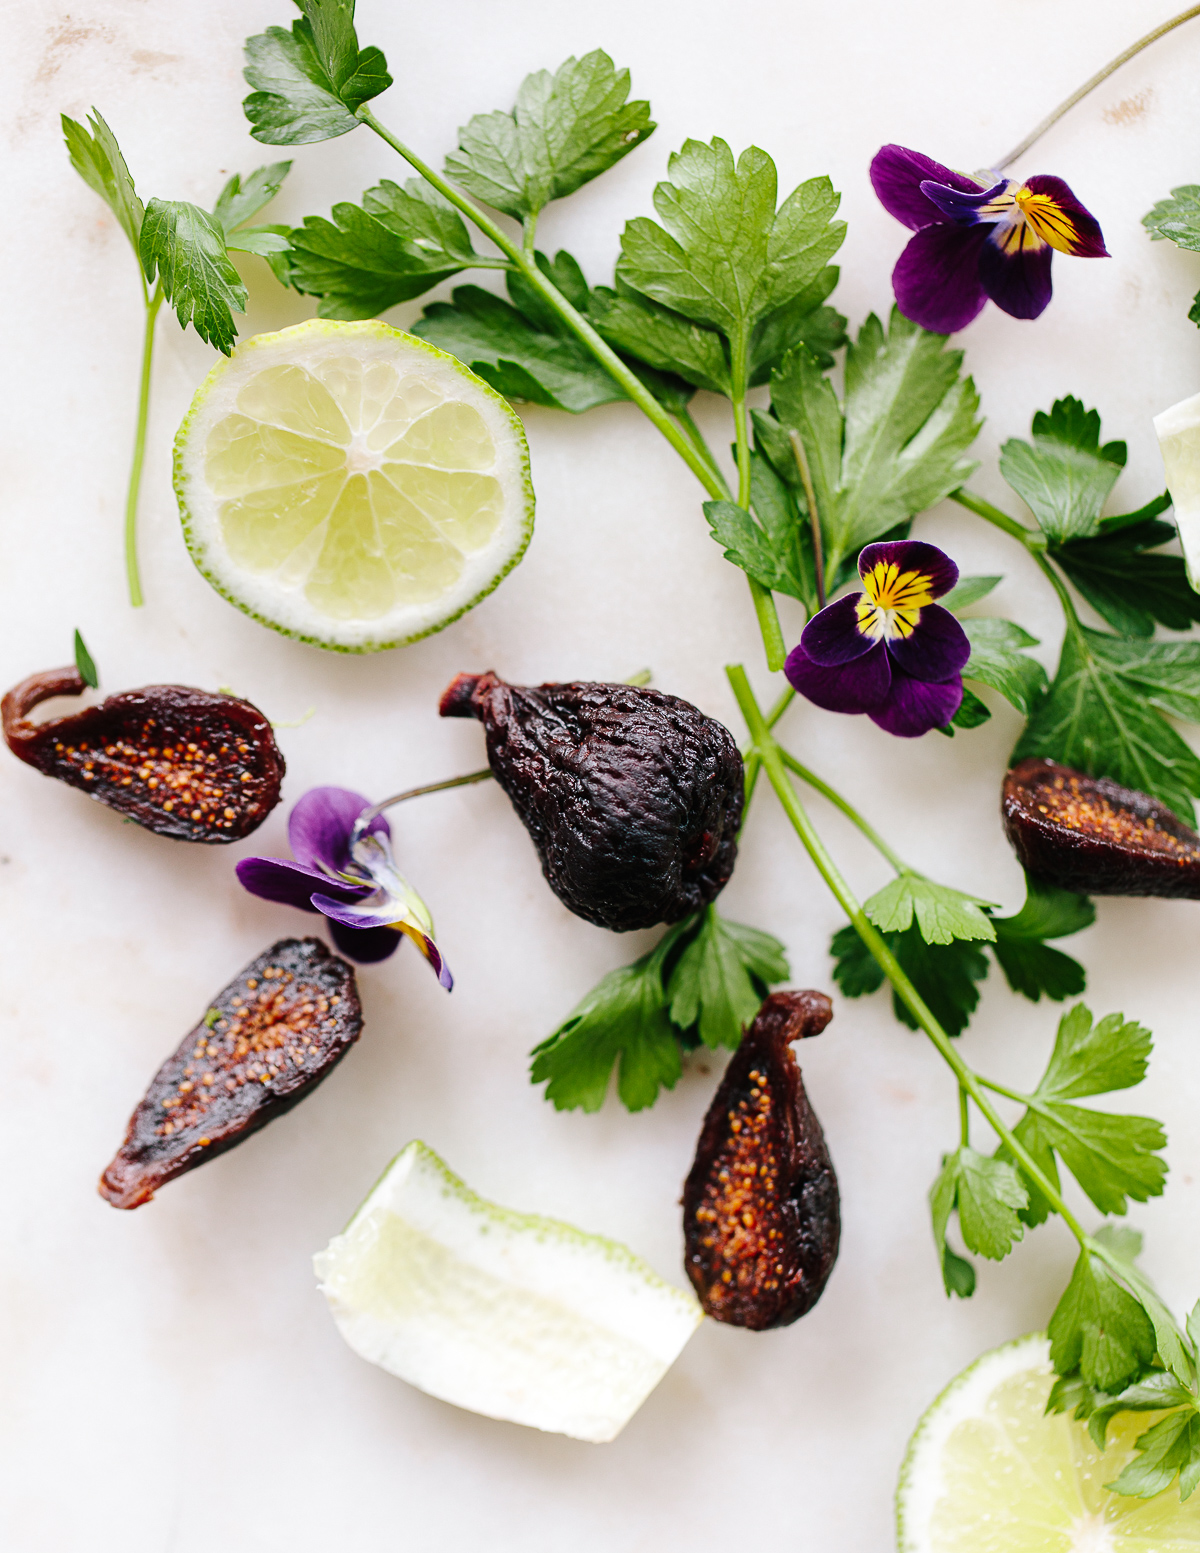 An image of dried figs, fresh lime slice, violet flowers and parsley leaves on a white surface.